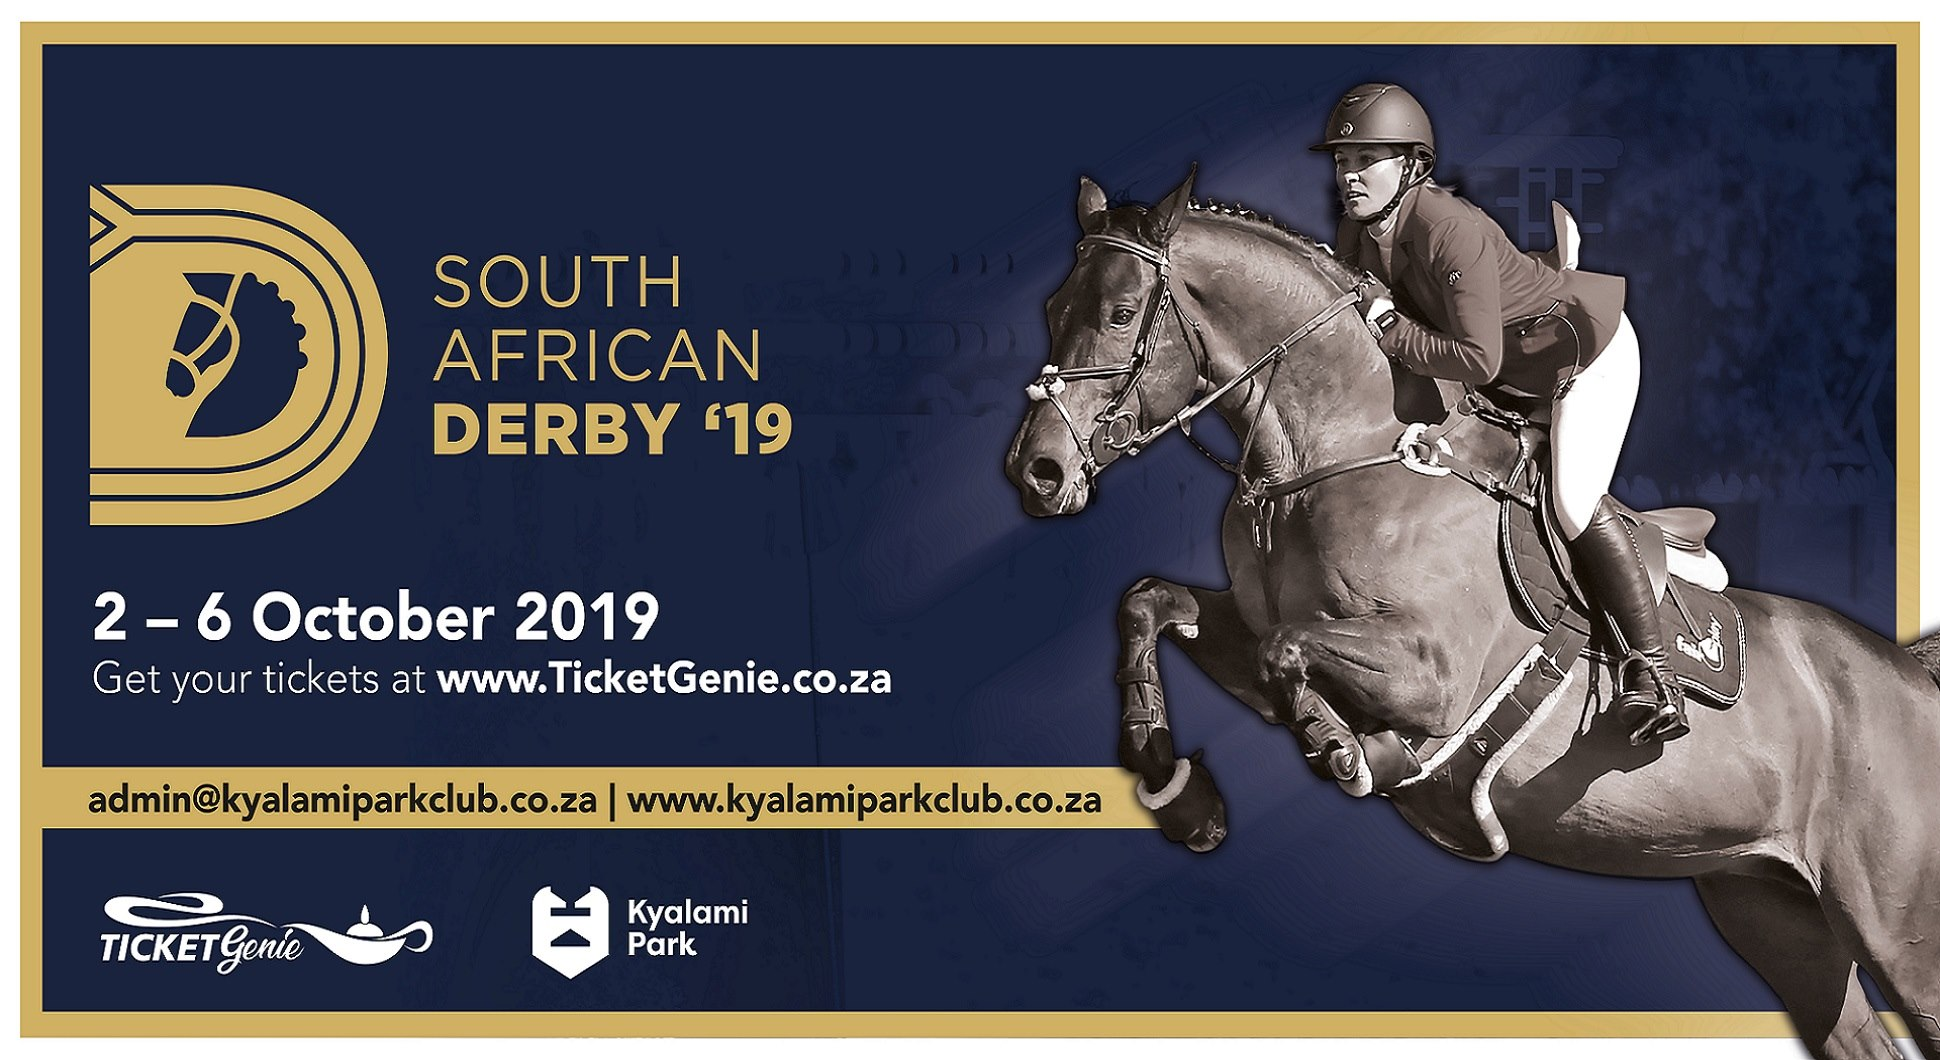 THE 2019 South African Derby - Showing/Complete Horse and Arena Entertainment